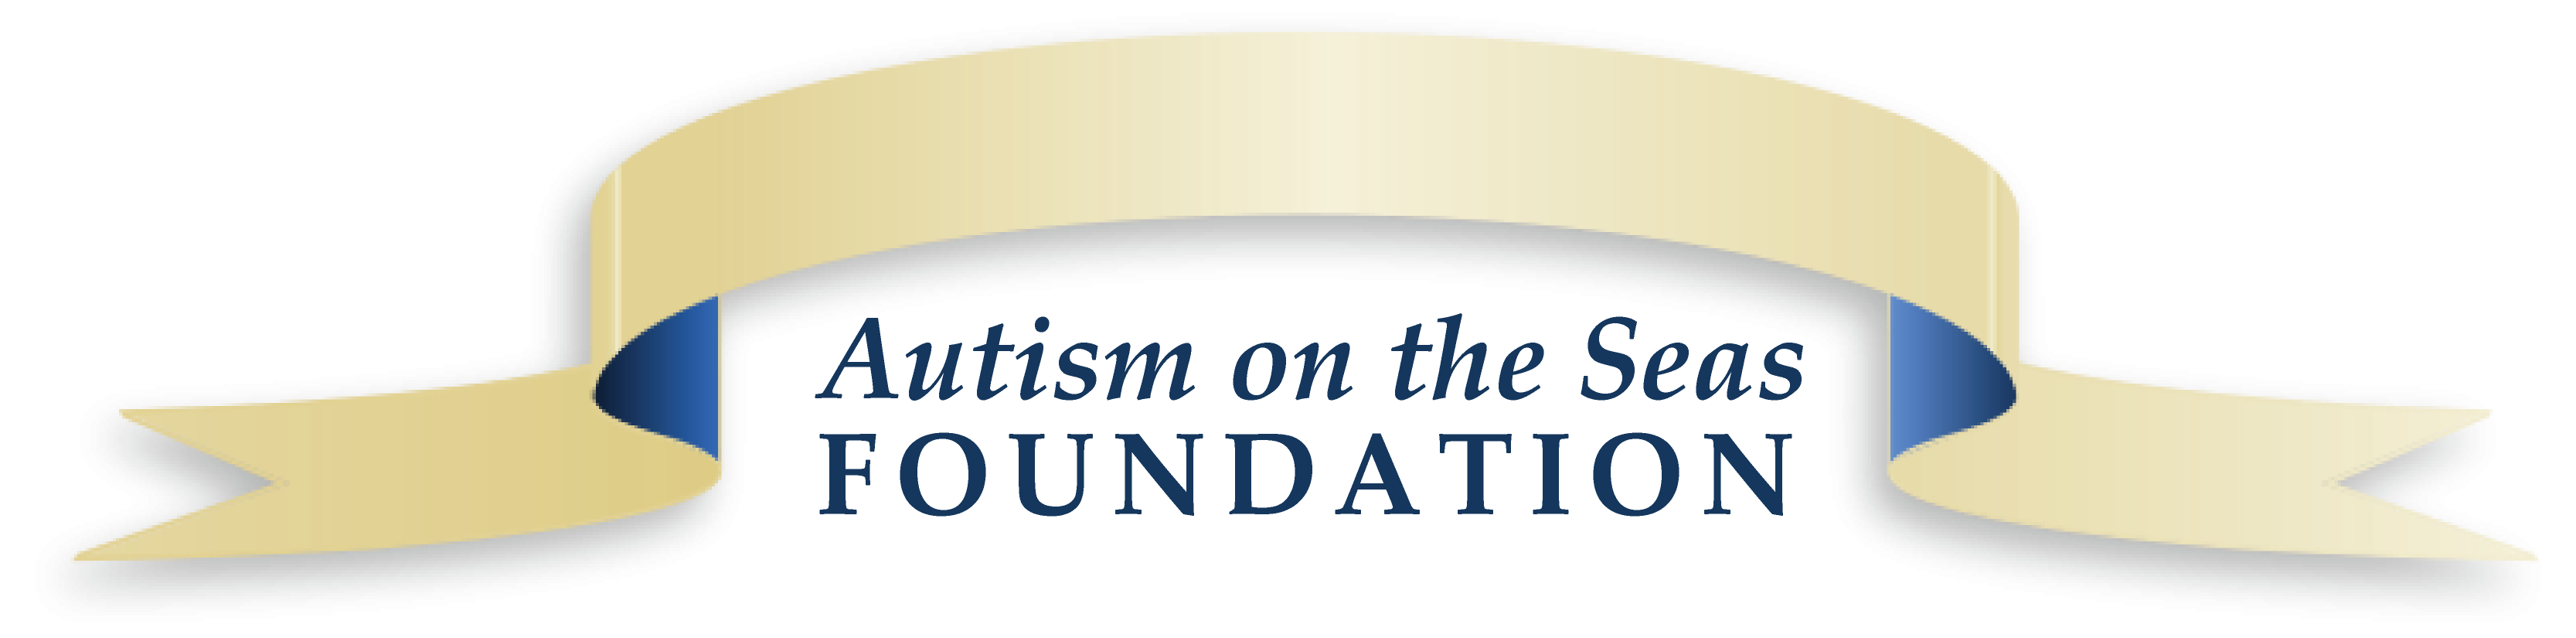 AutismontheSeas Logo Foundation Header